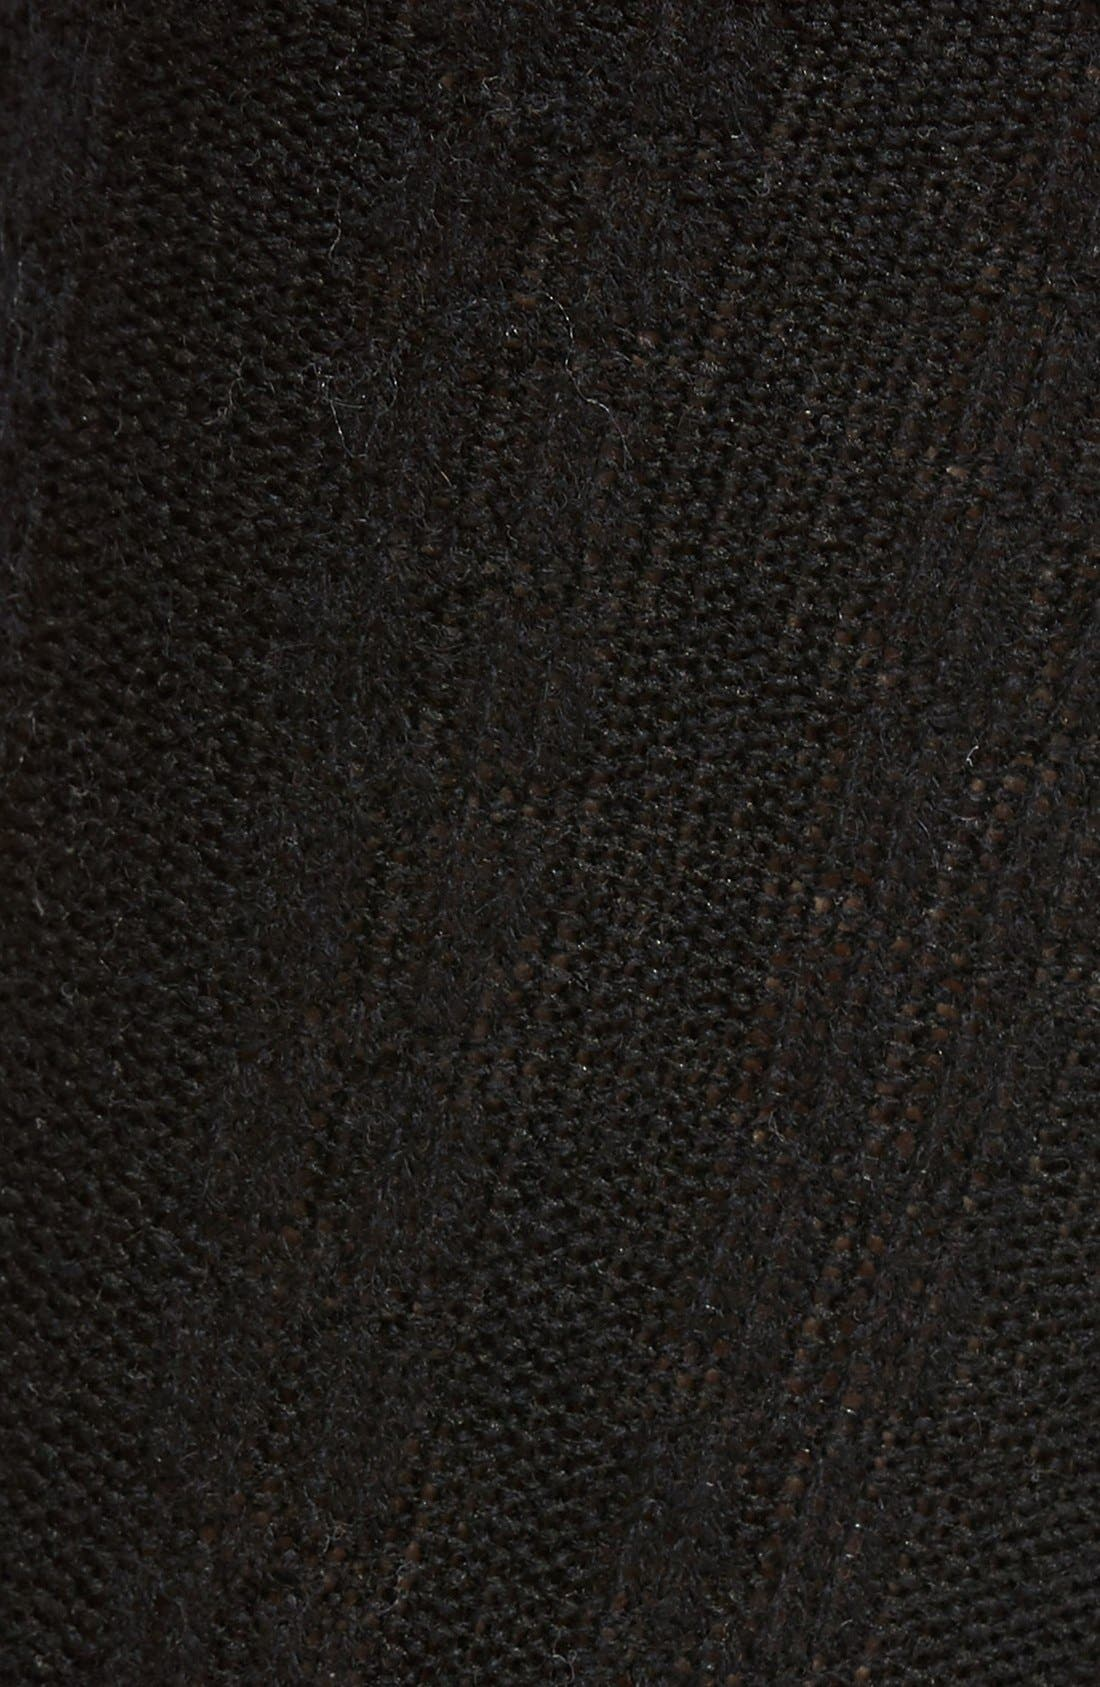 Stretch Cashmere & Wool Socks,                             Alternate thumbnail 2, color,                             001